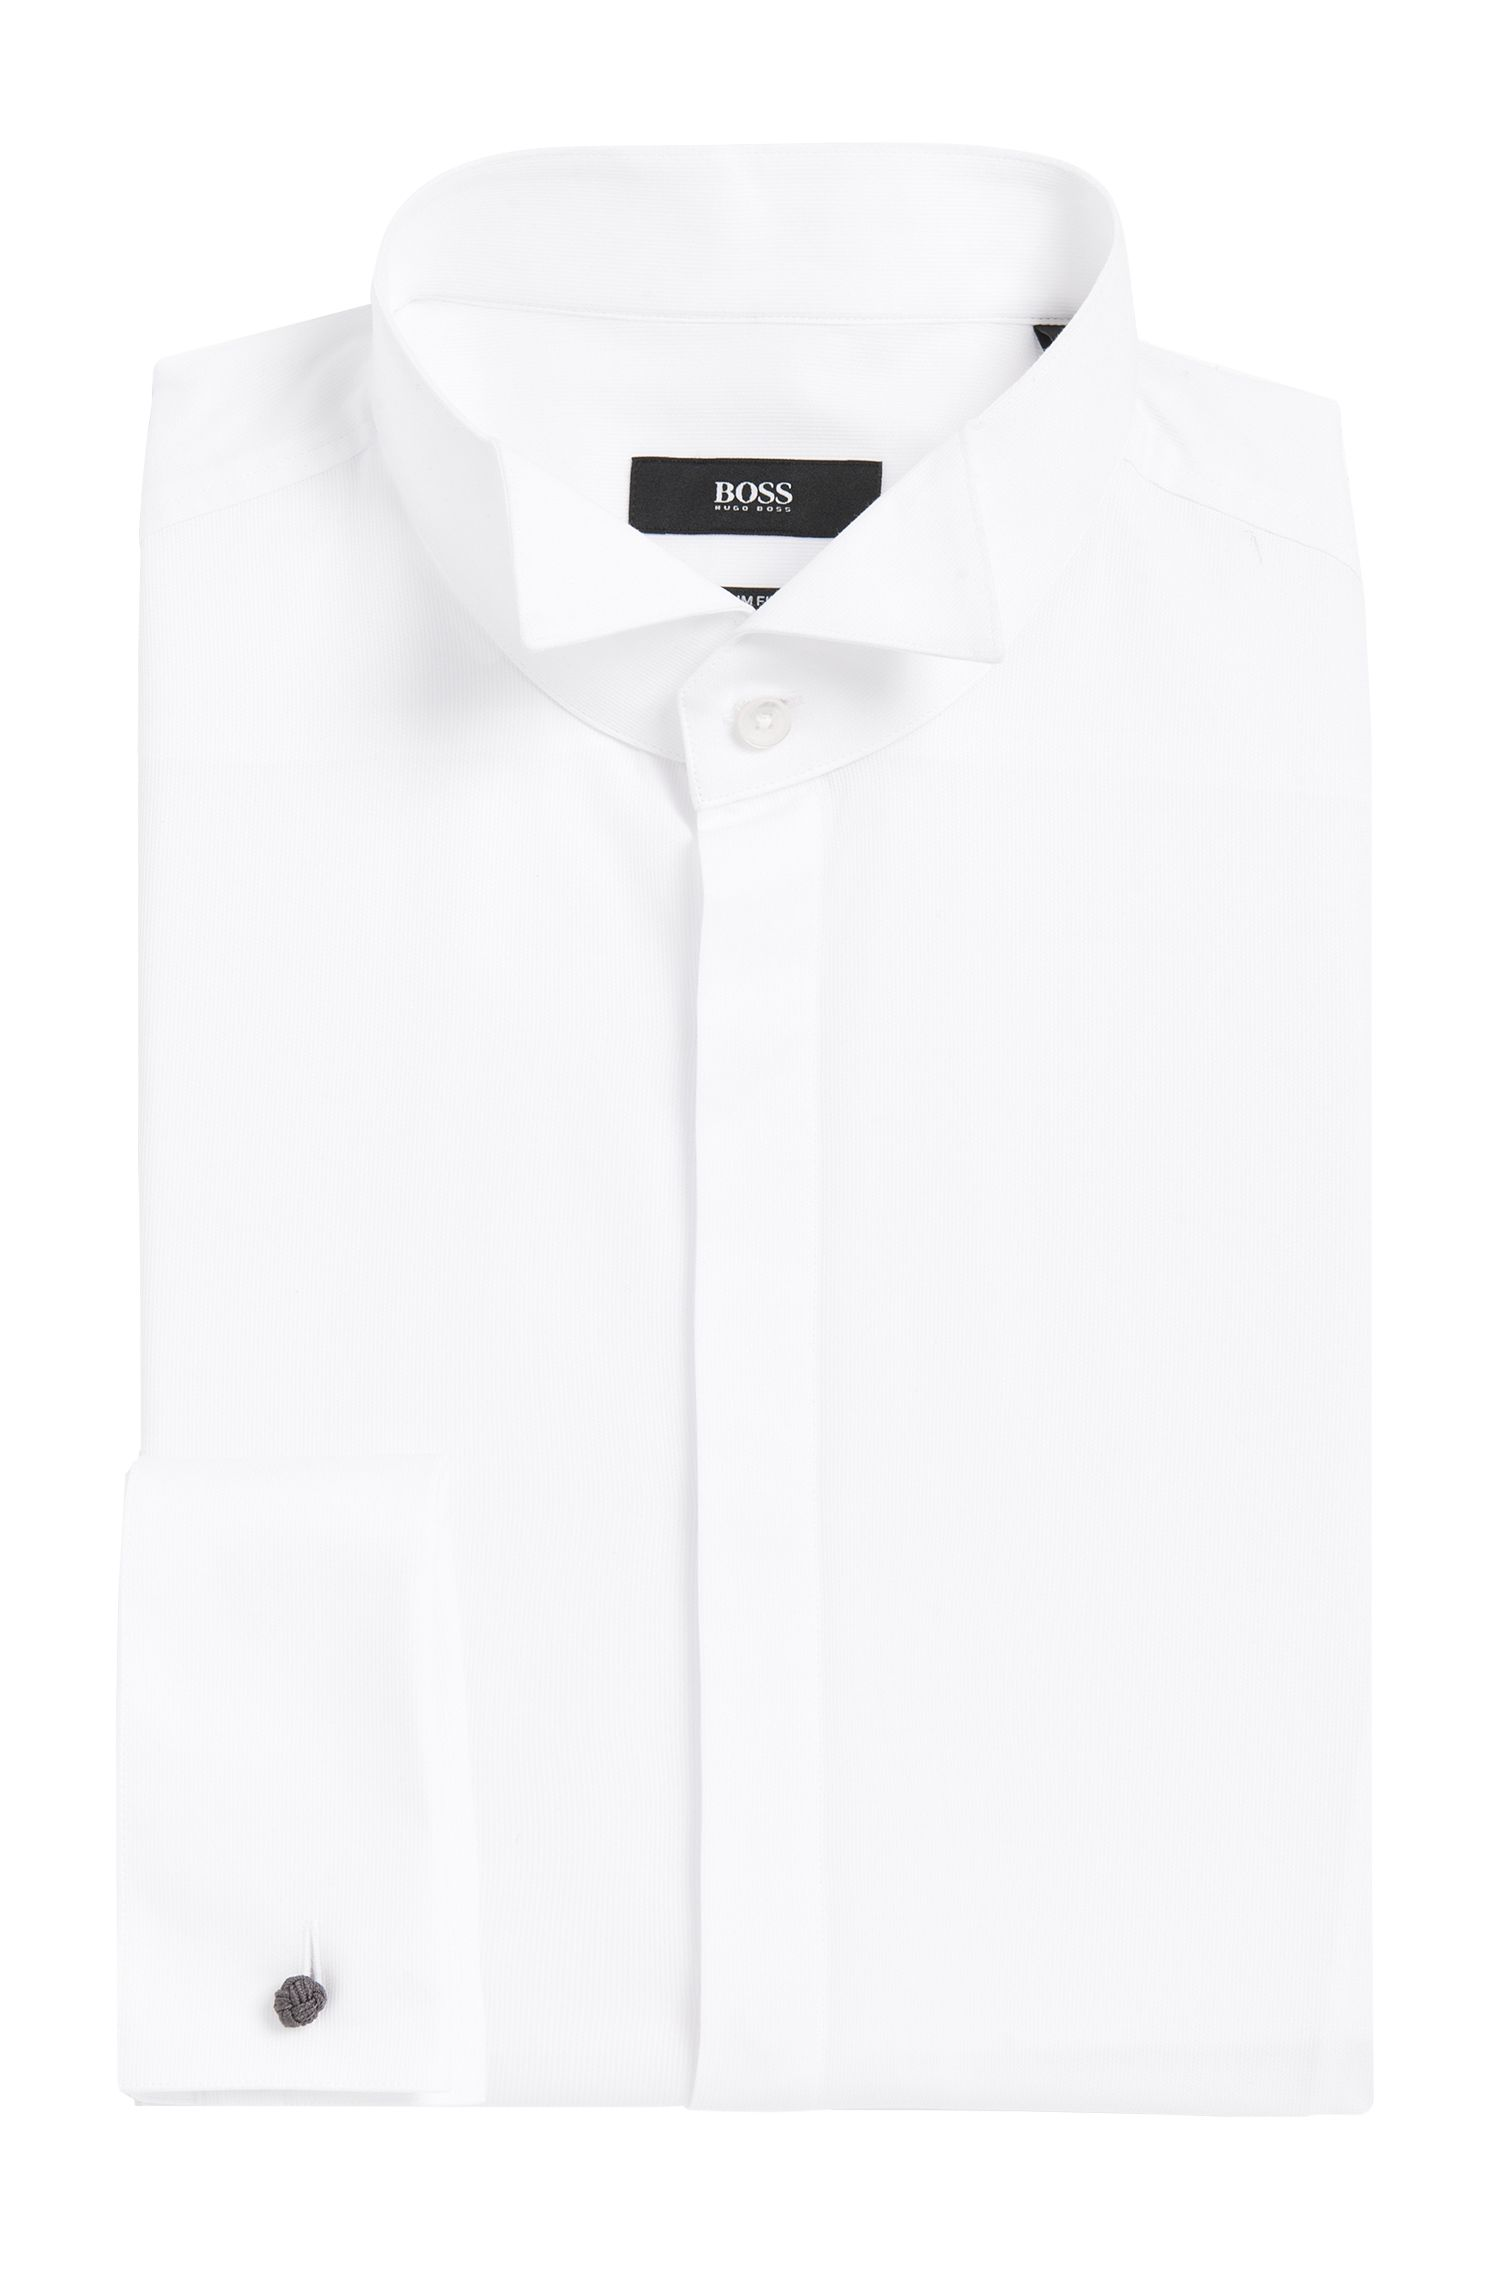 Wingtip Cotton Dress Shirt, Slim Fit | Jillik